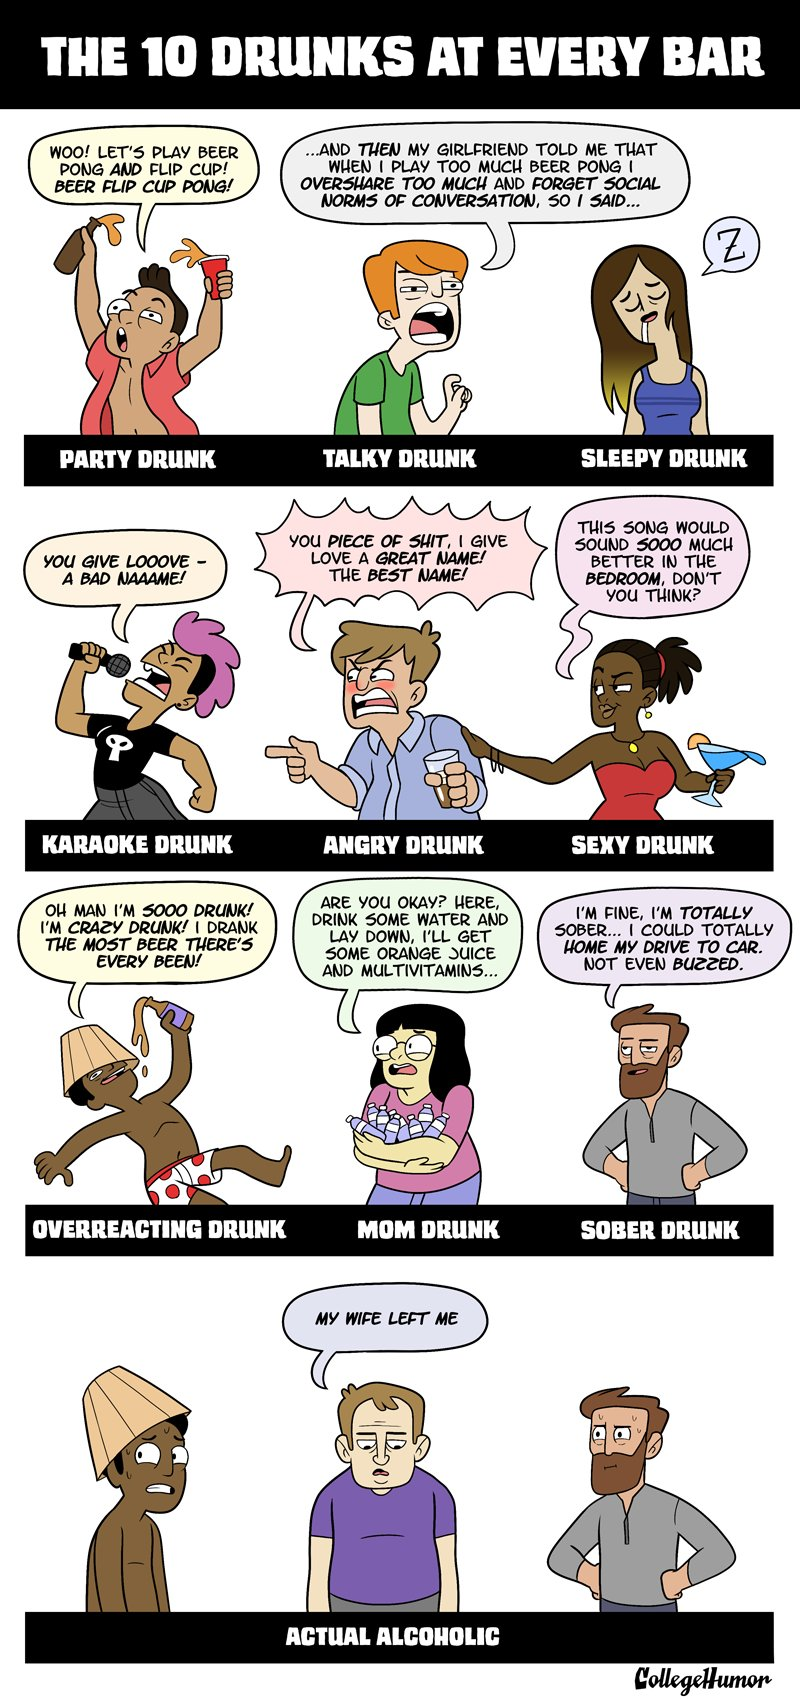 Types of Drunks in Every Bar